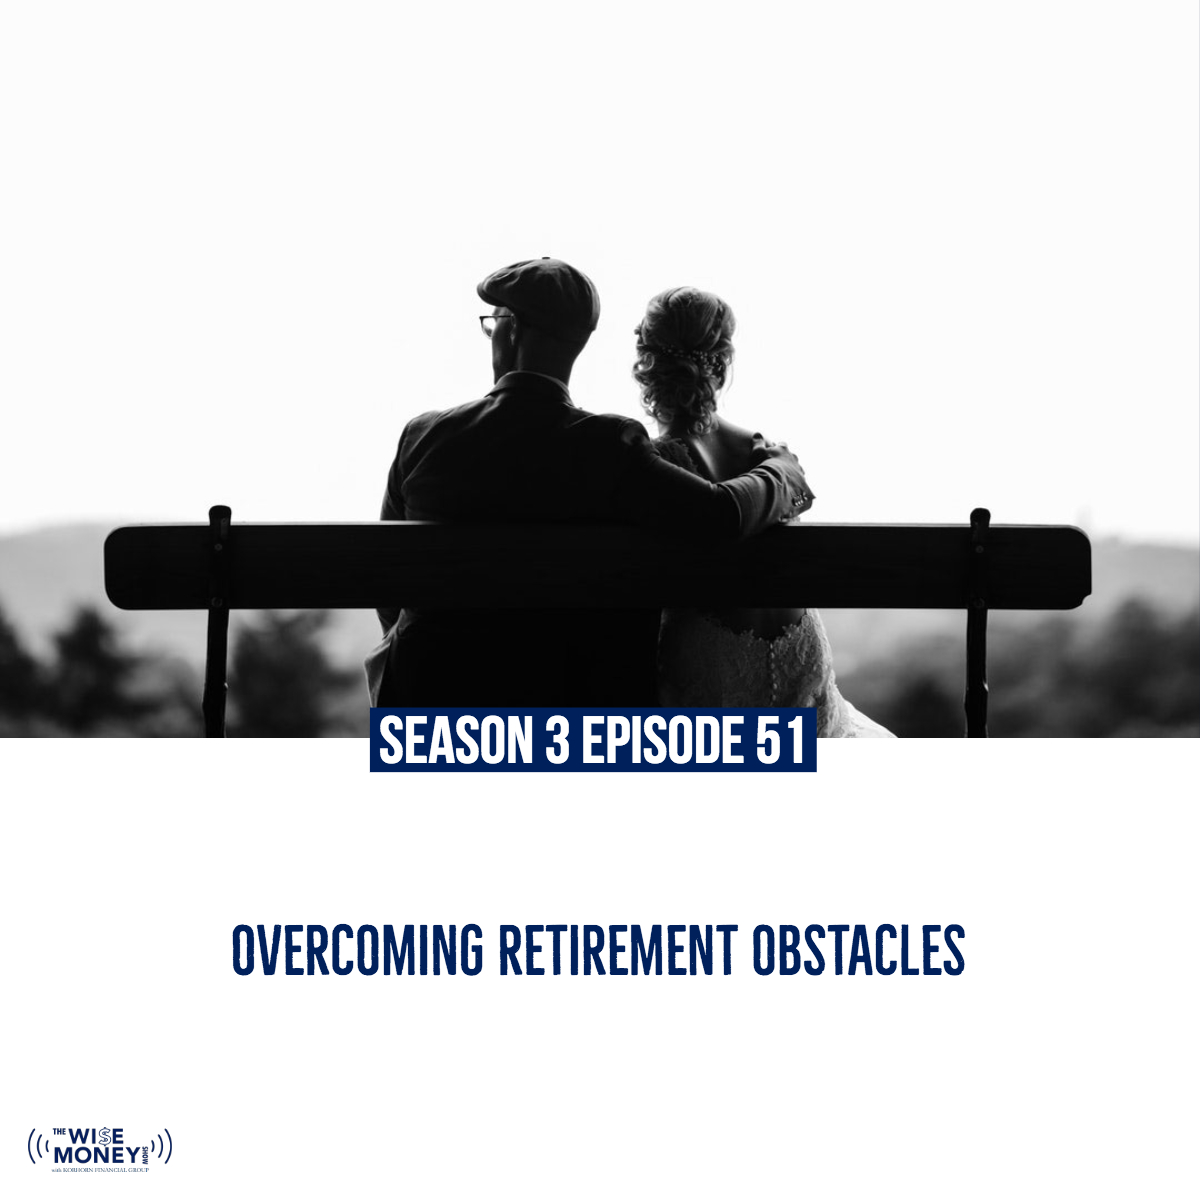 S3E51: Overcoming Retirement Obstacles